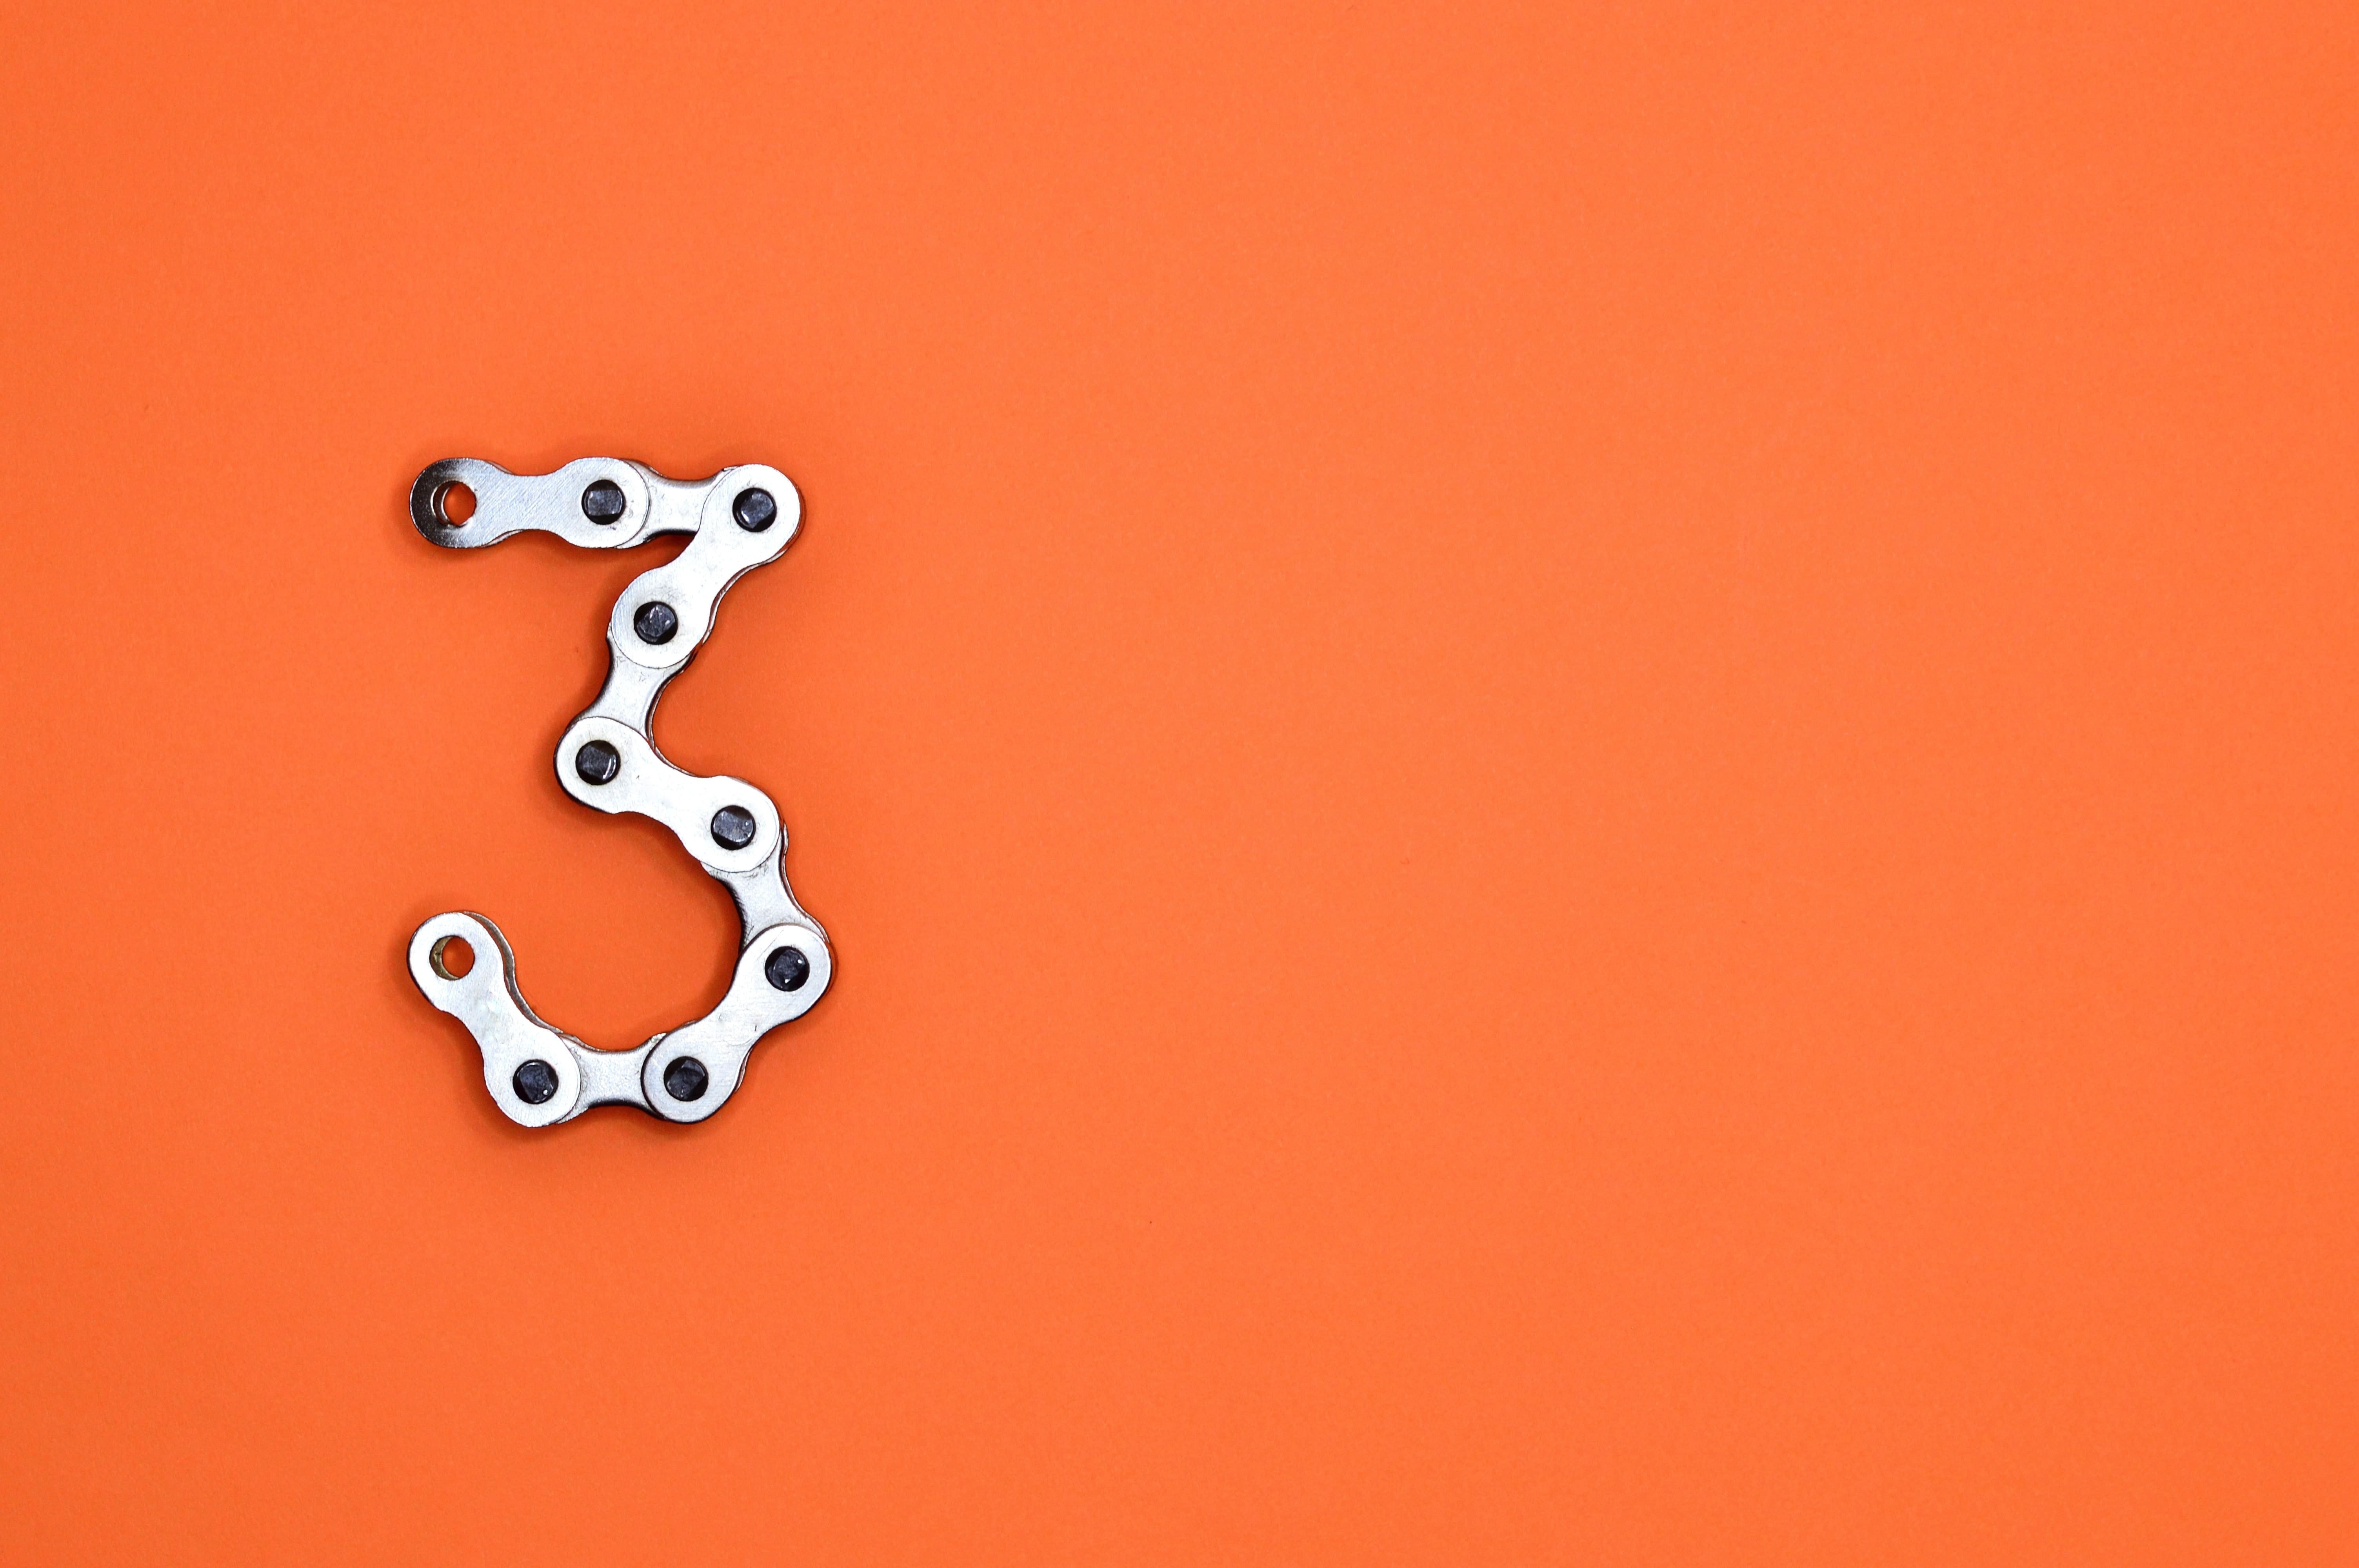 a chain in the shape of 3 to represent the 3 parts to a new supply chain operating model